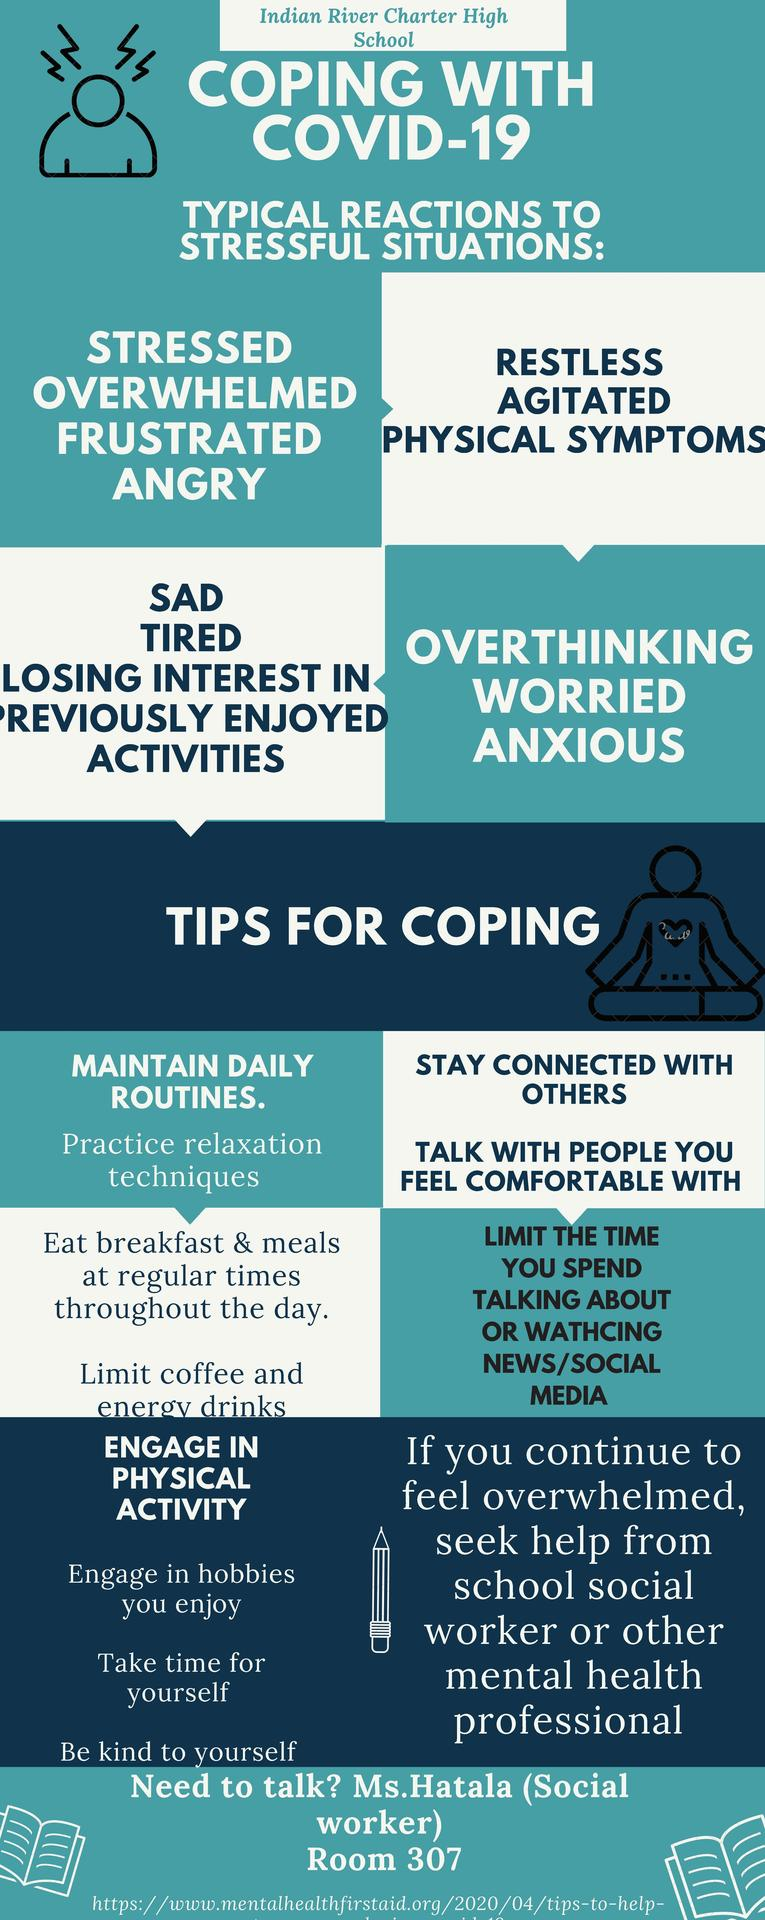 Tips for COVID-19